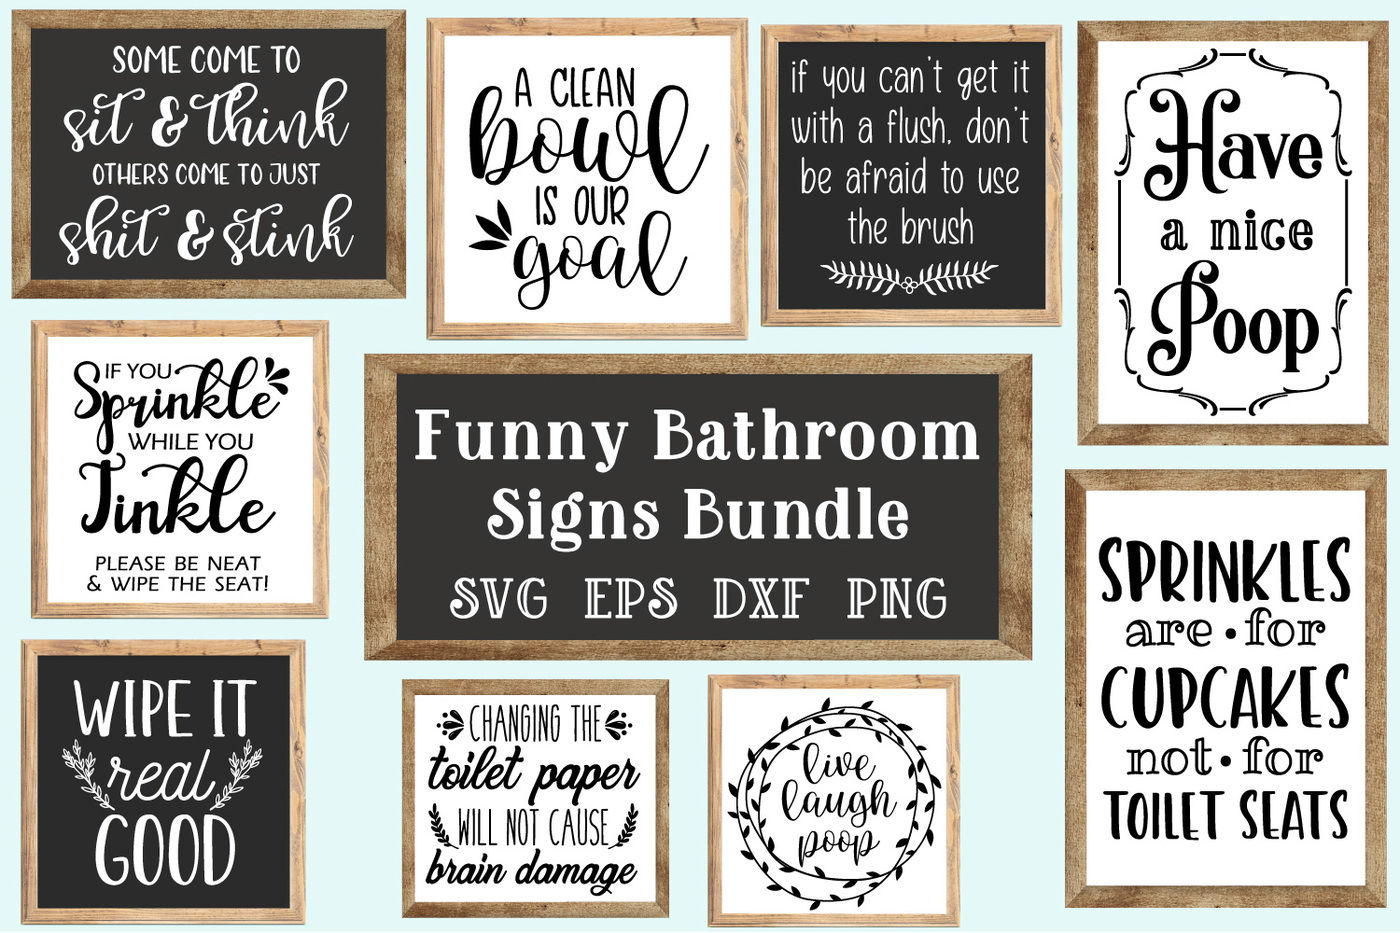 Bathroom Signs Bundle Svg Eps Dxf Png By Craft Pixel Perfect